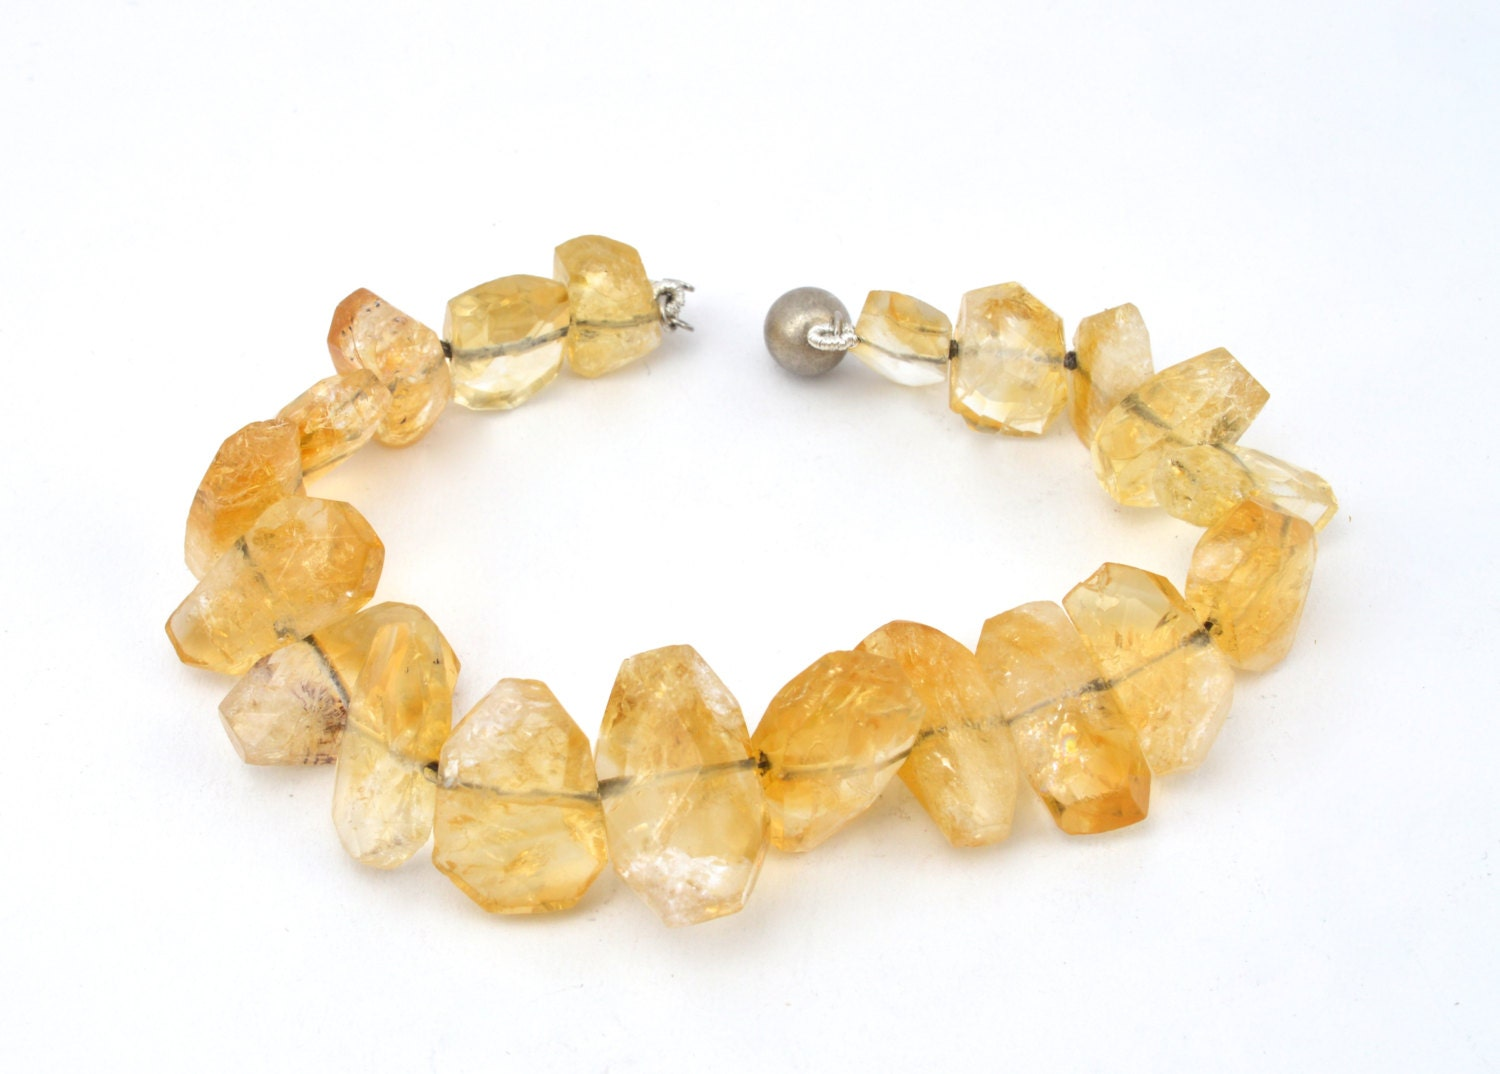 Citrine Bracelet Yellow Bracelet. Bud Platinum. Jewelry Platinum. Asha Diamond. Gold Tone Watches. H1 Color Diamond. 18 Karat Gold Bracelet. Rose Bangle Bracelet. Masculine Wedding Rings